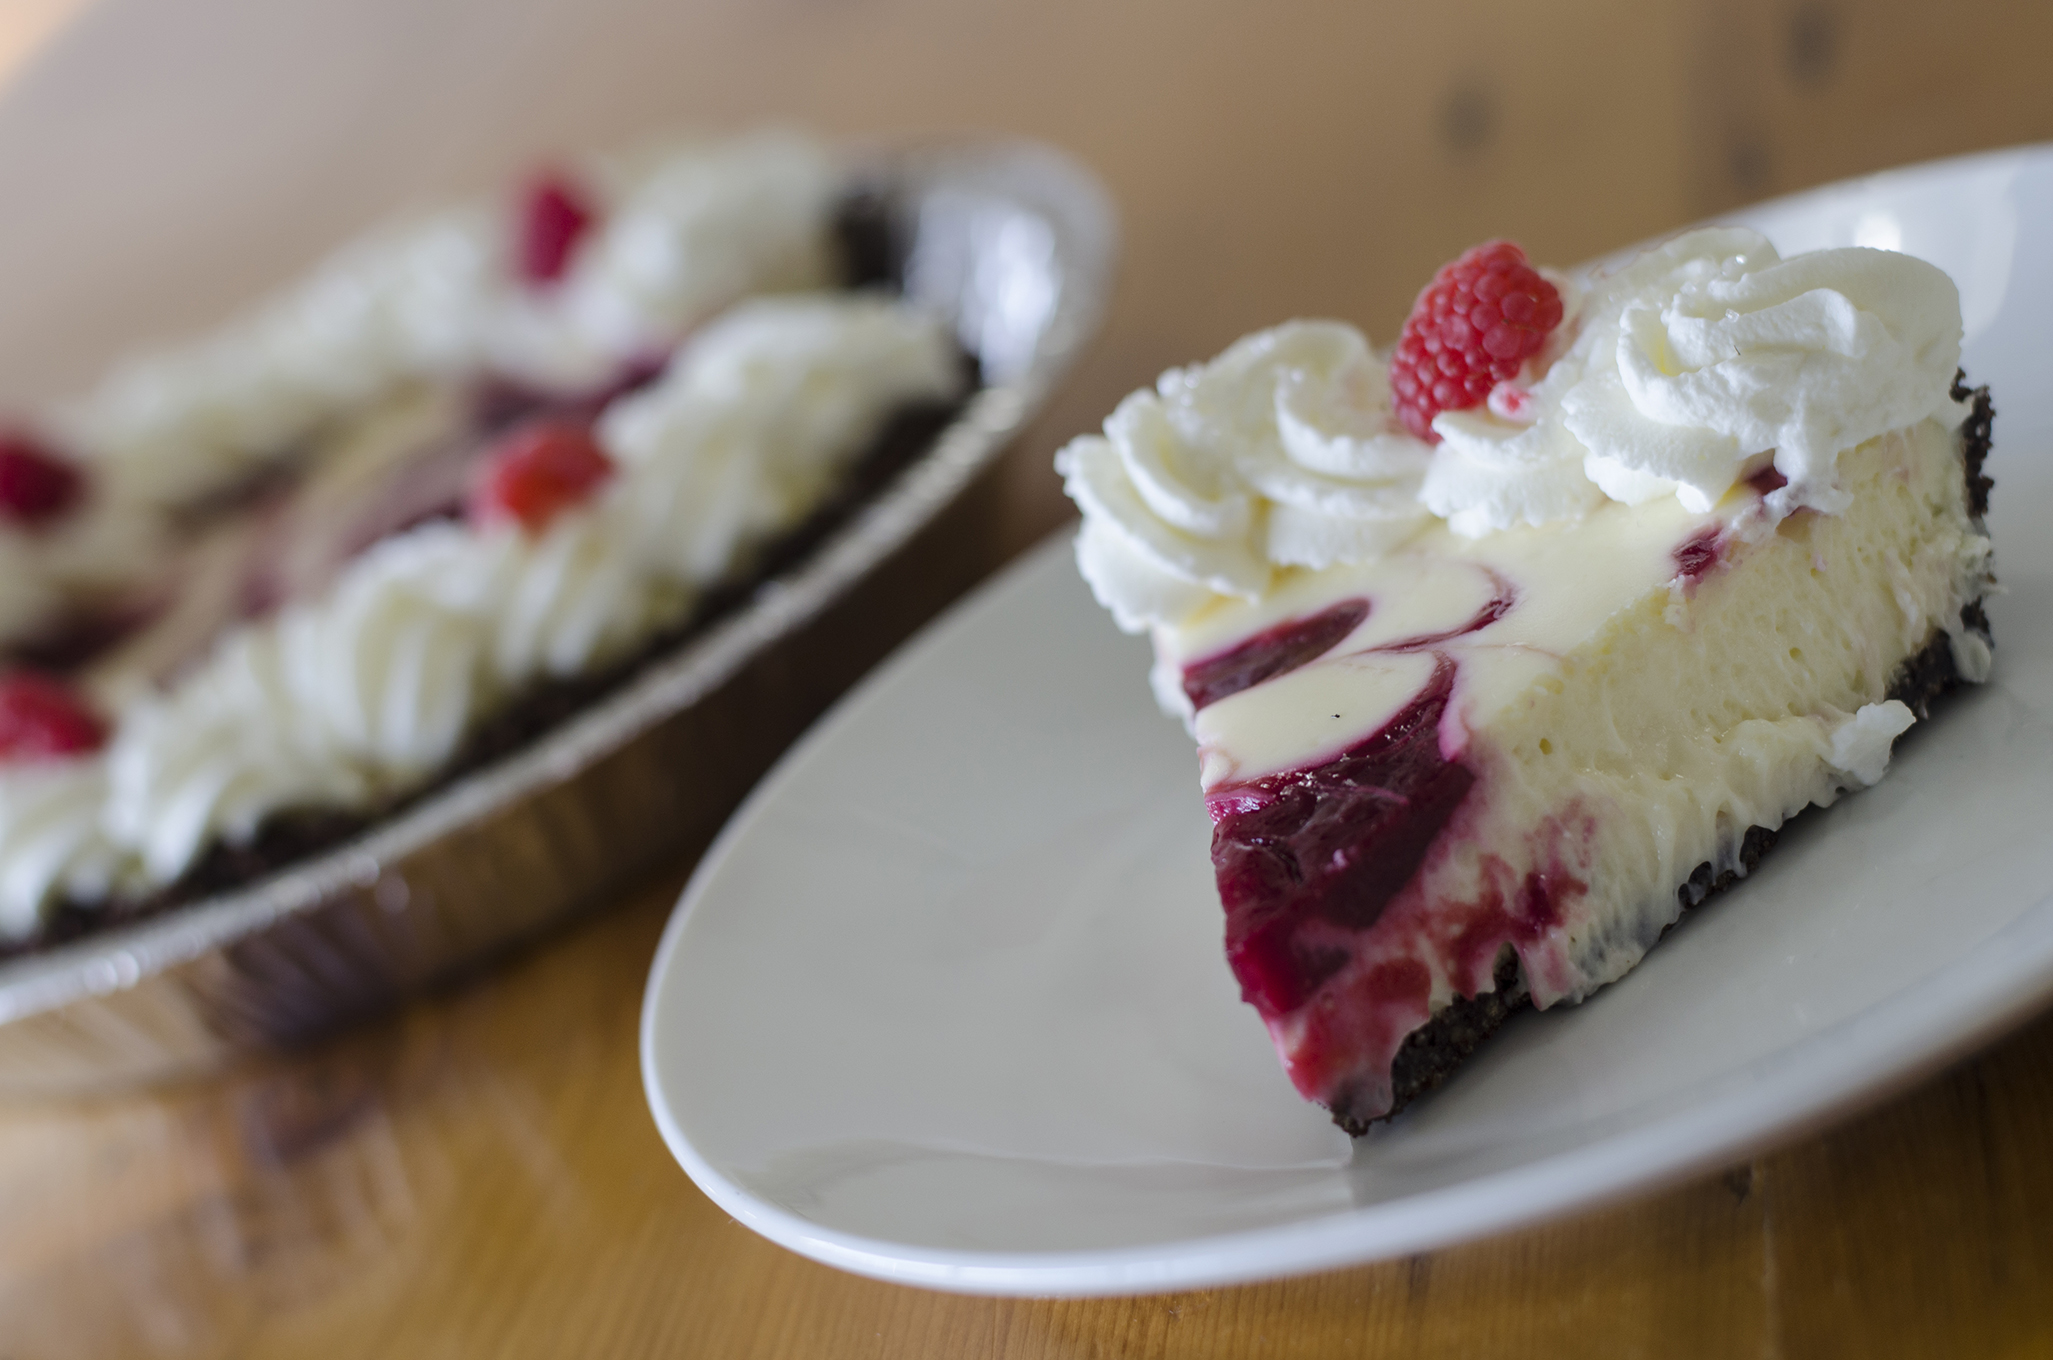 Raspberry cheesecake pie from Riverside Pie Cafe in Windsor, Ontario.